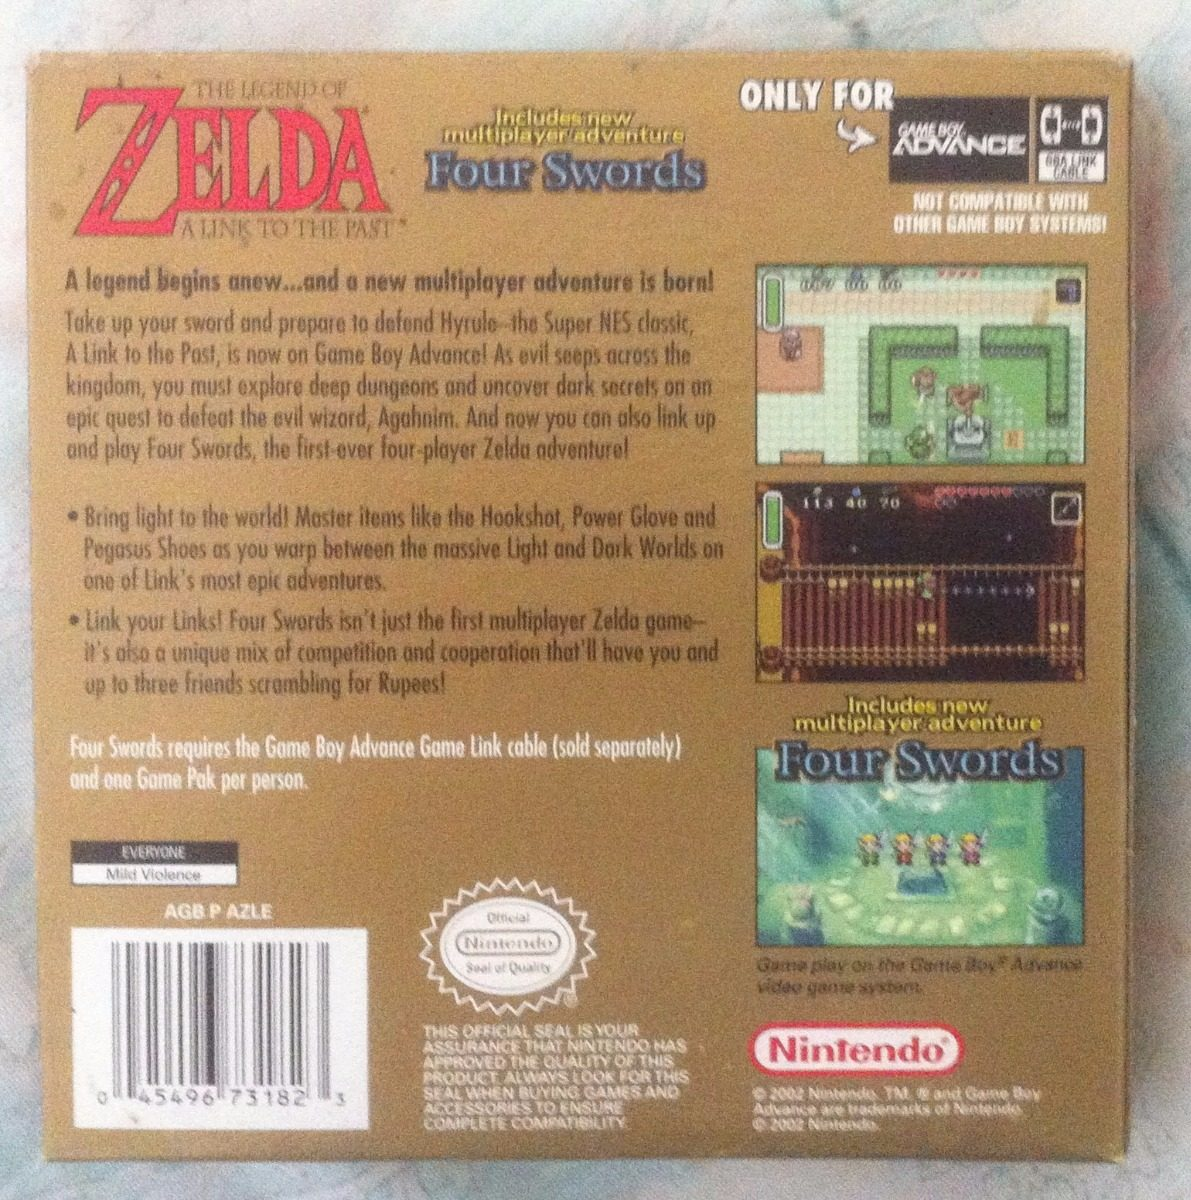 Gameboy Advance: The Legend Of Zelda: A Link To The Past - Bs  1 100 000,00